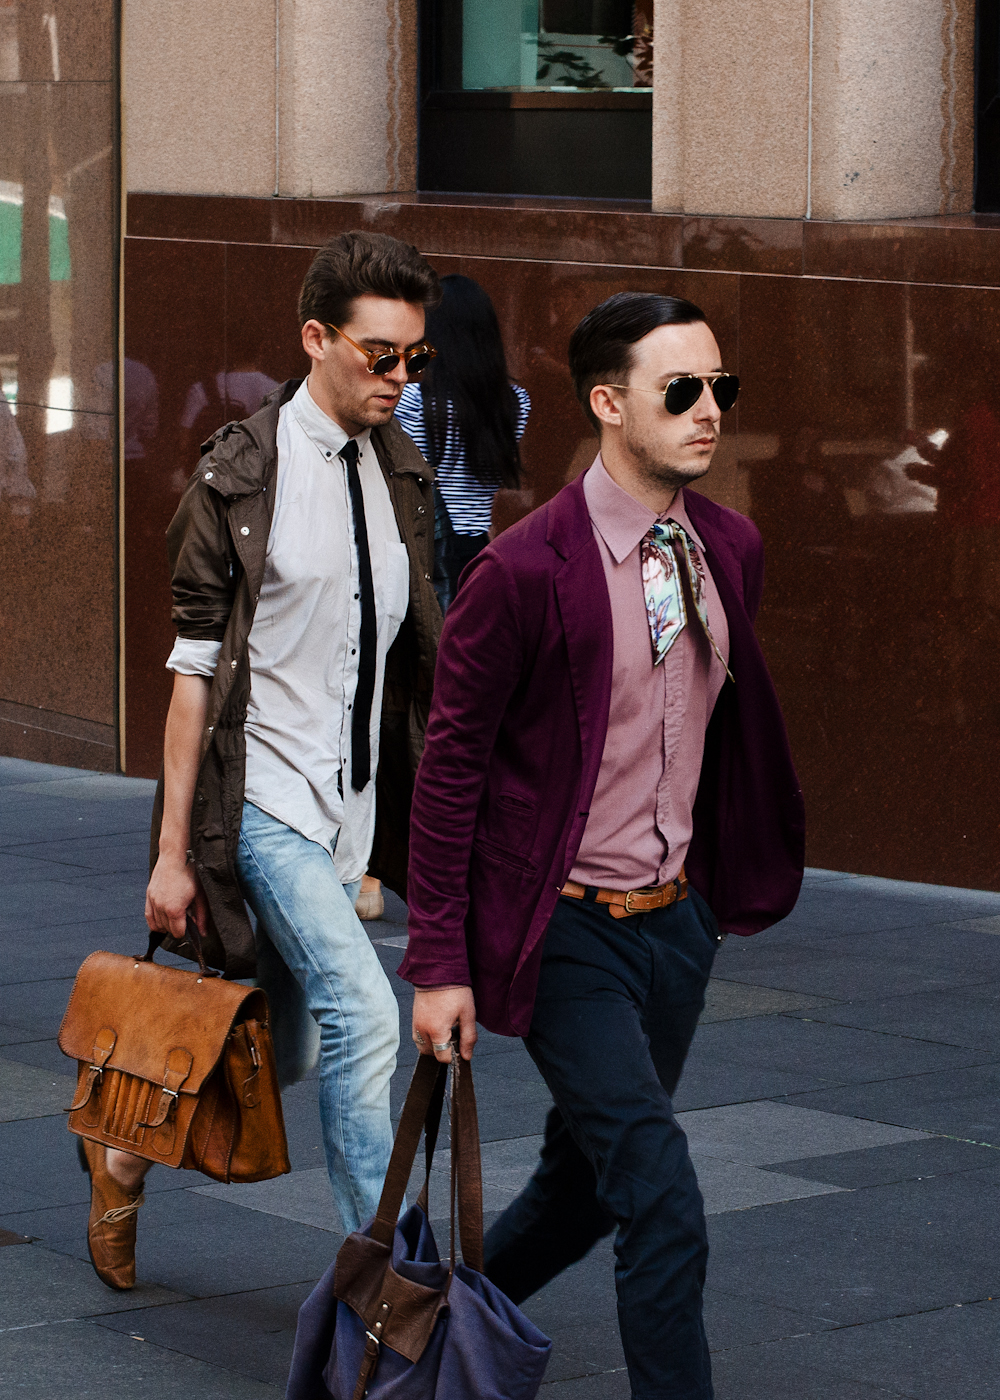 #menswear   Similar look:   ASOS Slim Fit Blazer in Velvet  .